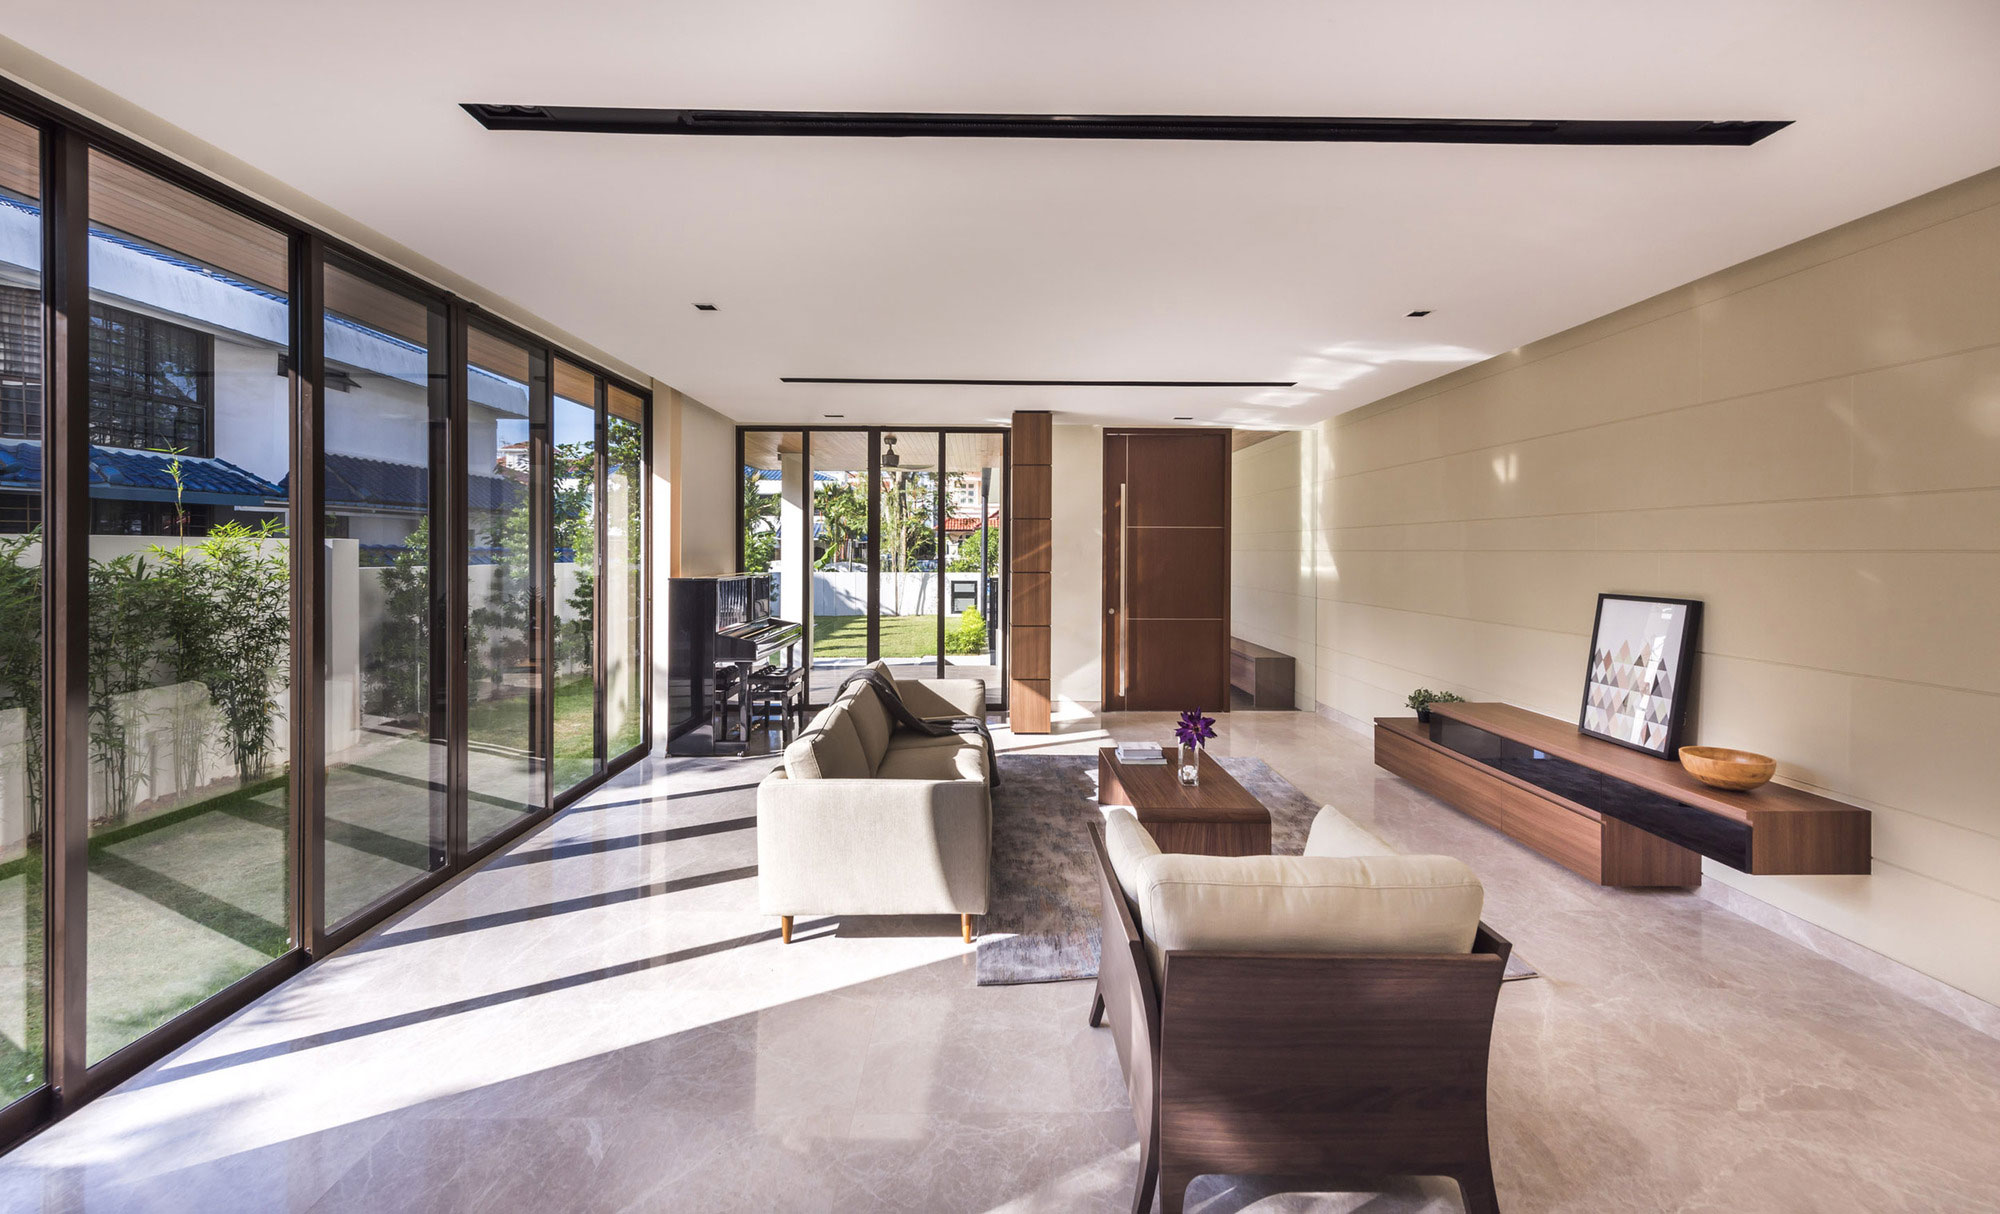 A Spacious and Elegant Contemporary Home in Singapore